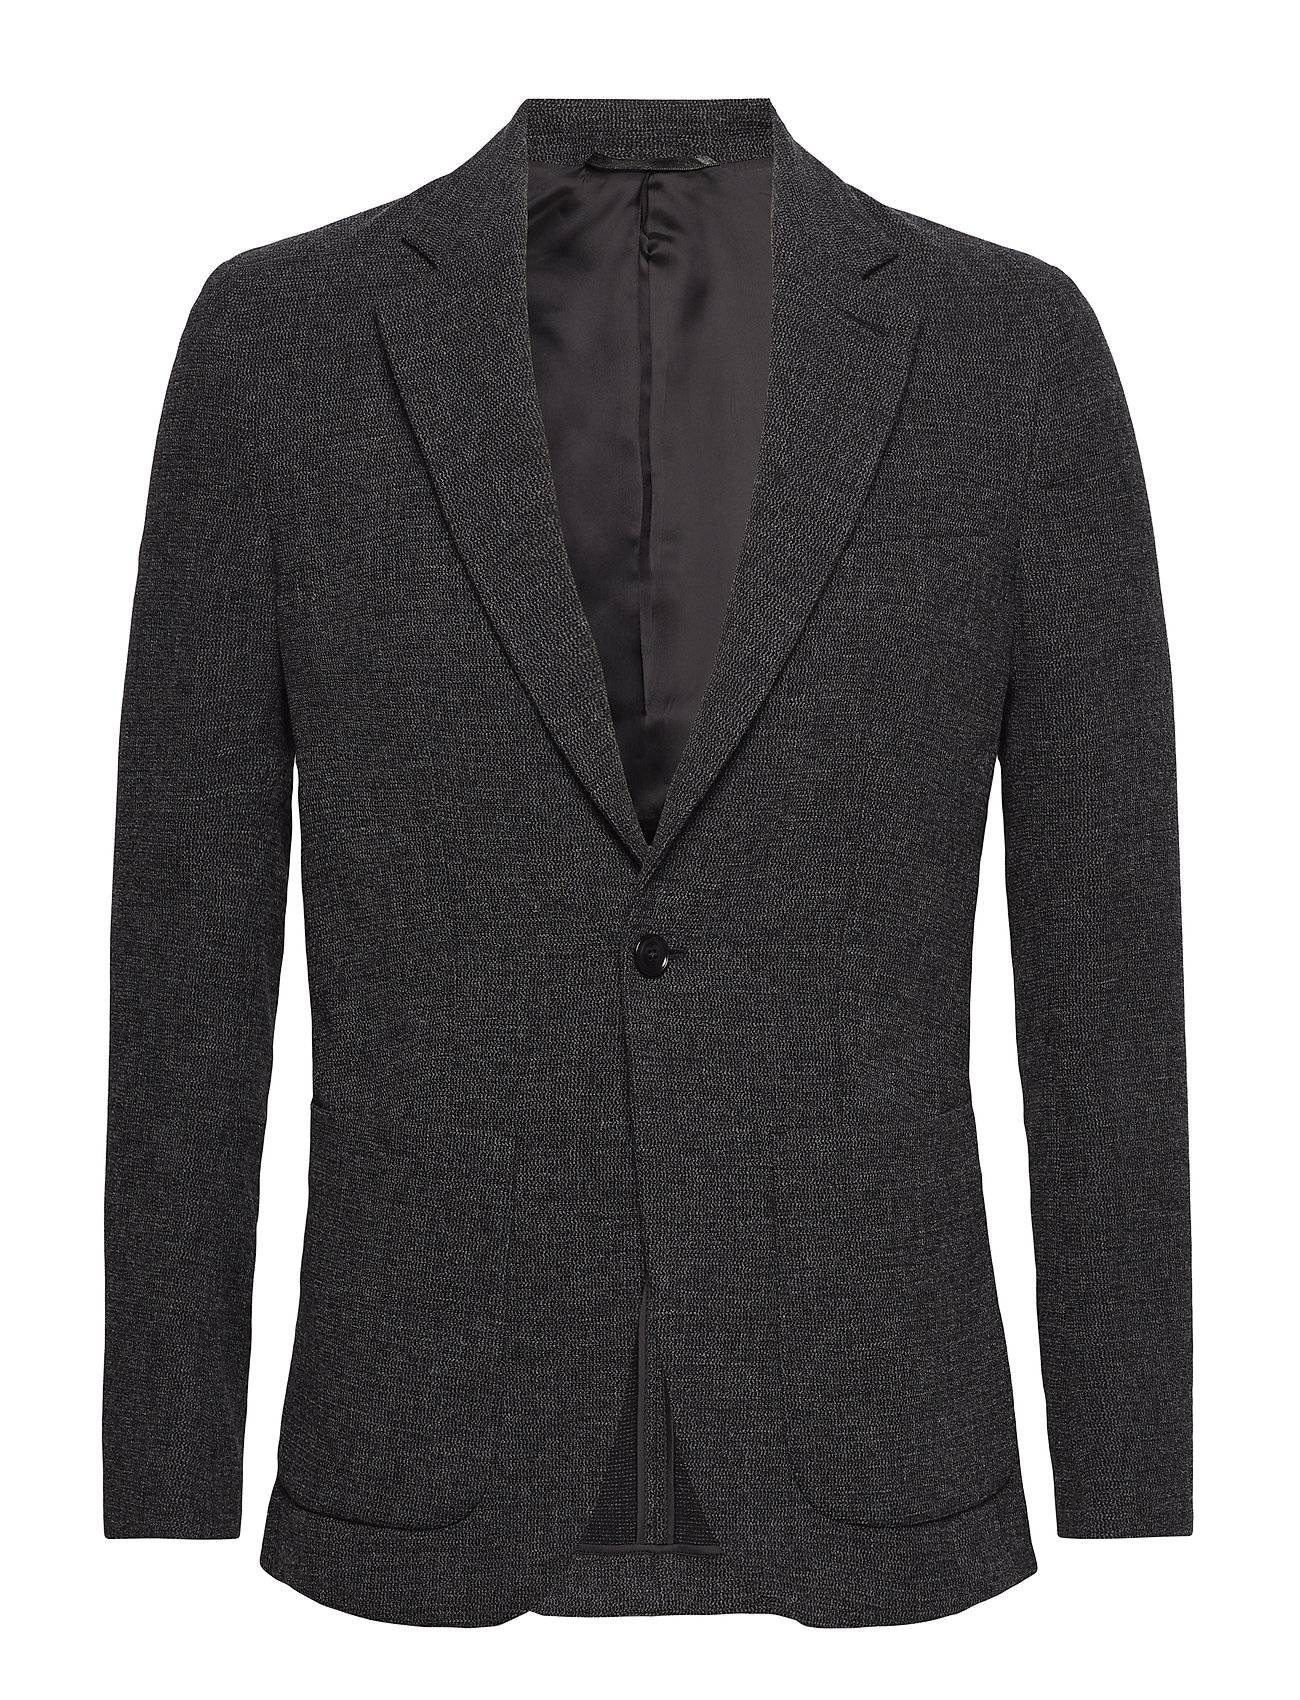 Filippa K M. Dean Knit Look Jacket